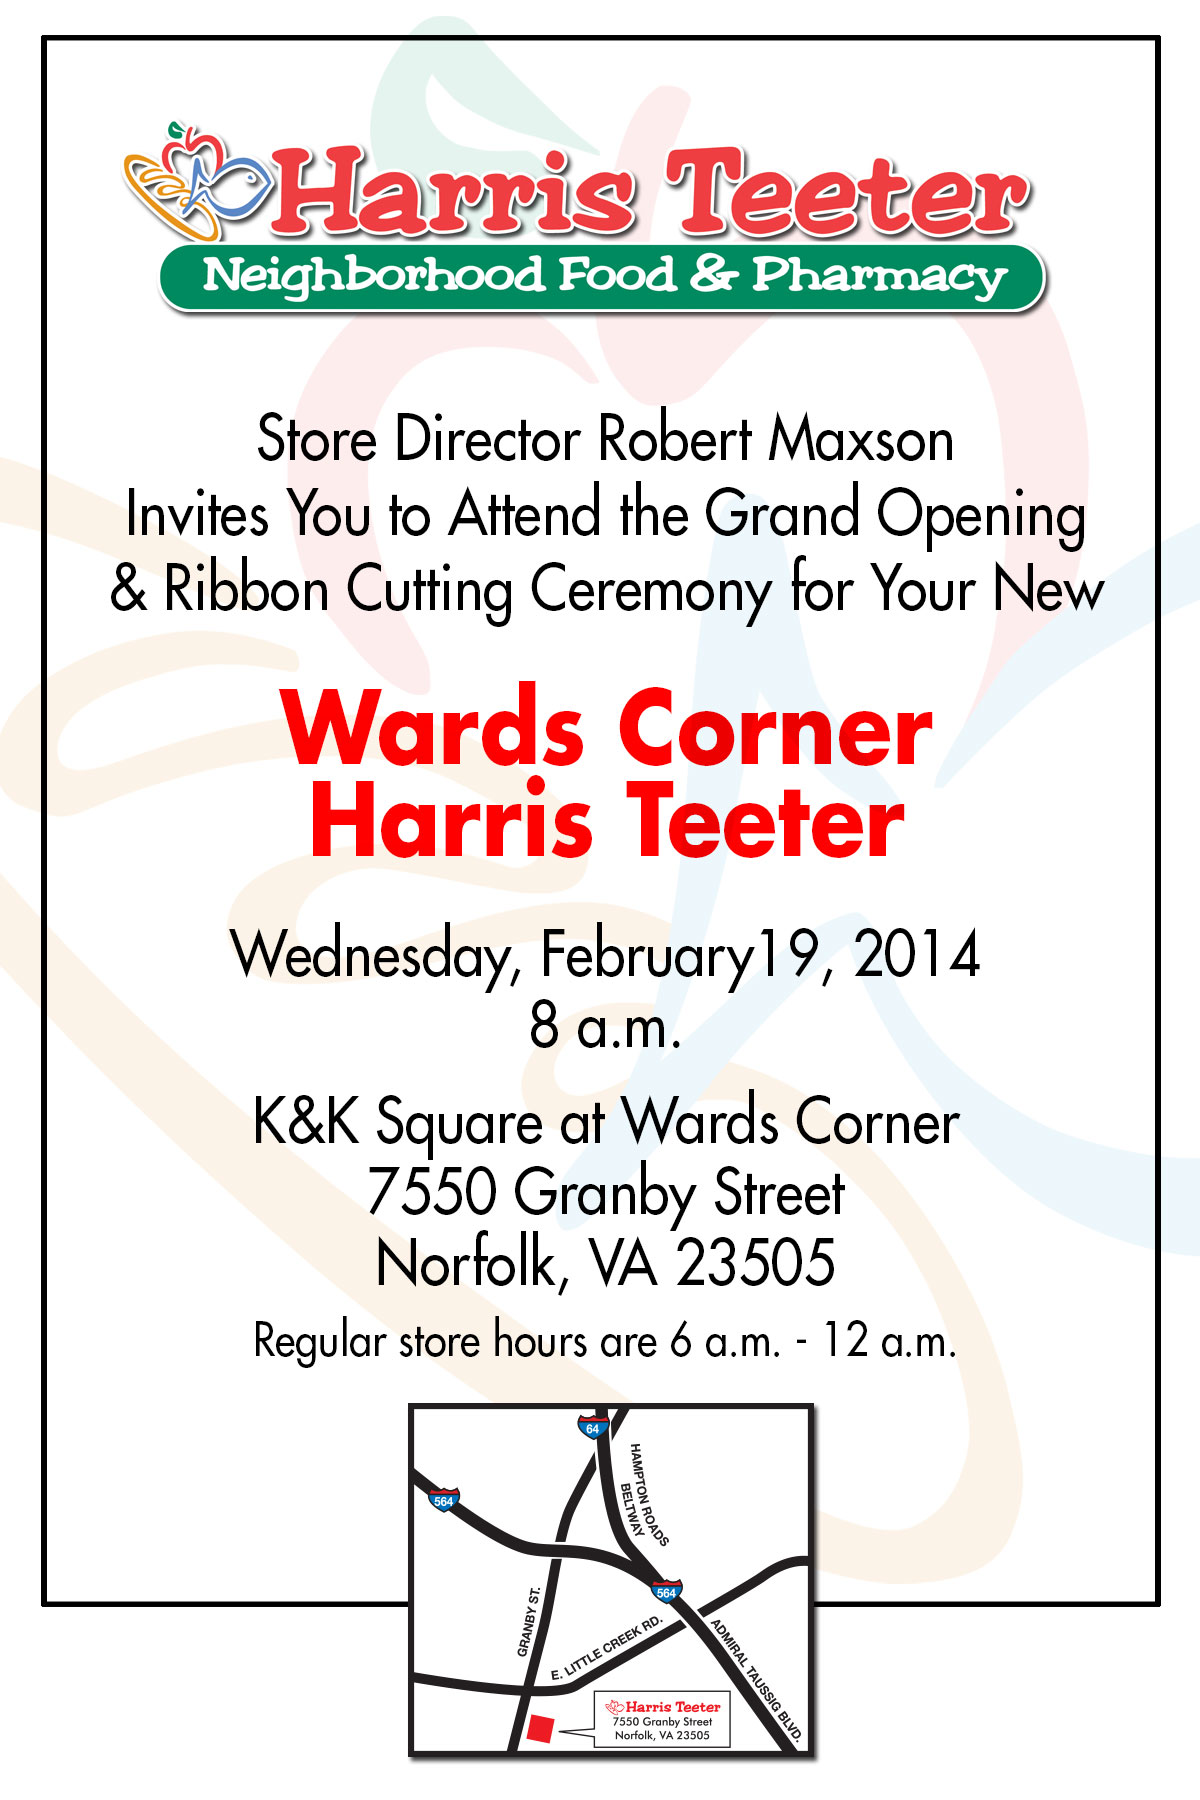 harris teeter | Wards Corner Now - Wards Corner, Norfolk, Virginia